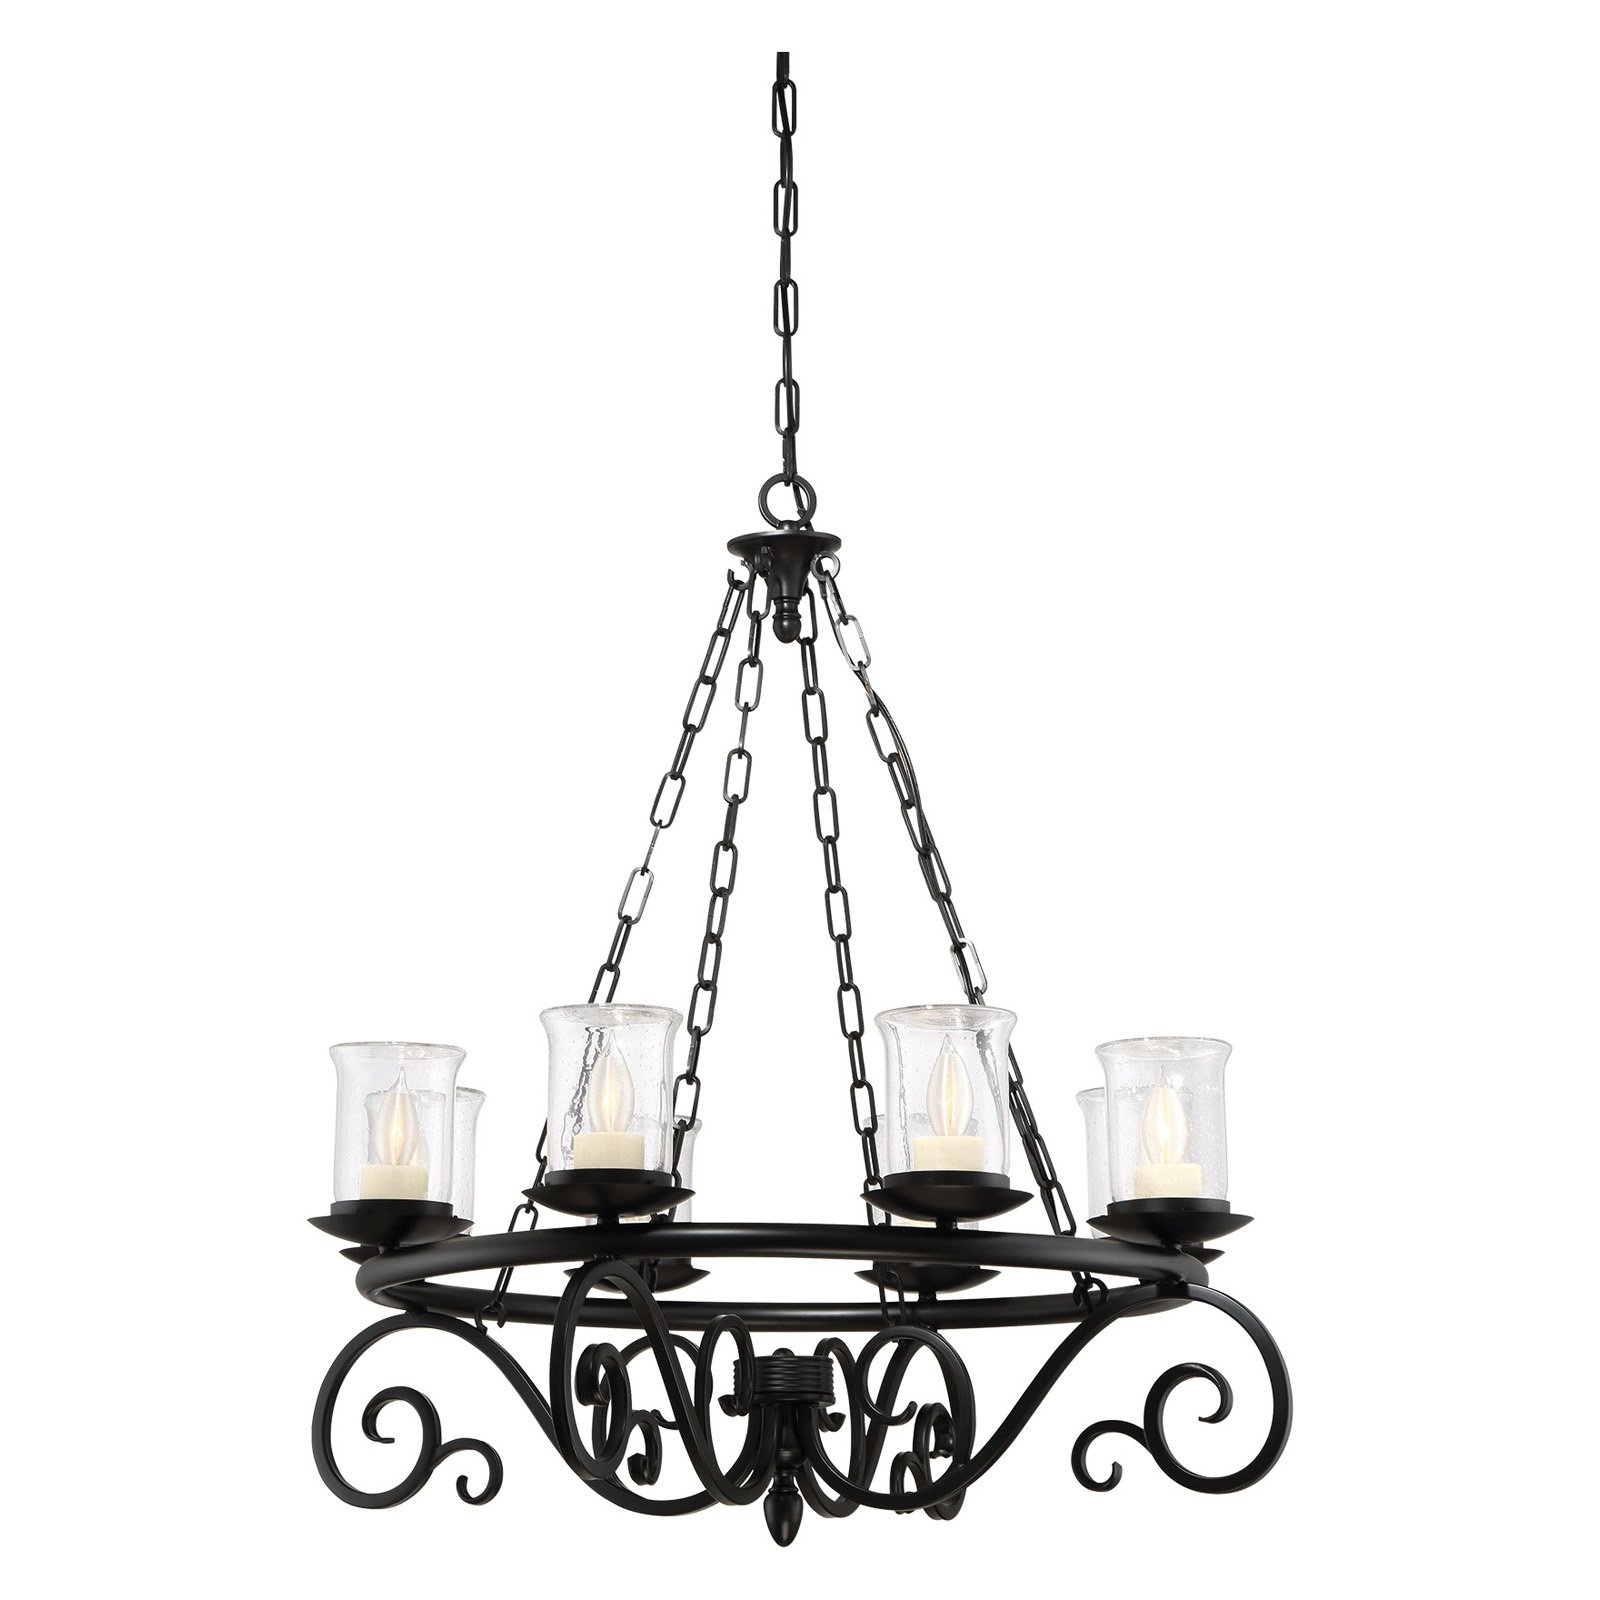 Savoy House Welch 1-1120-8-BK Outdoor Chandelier